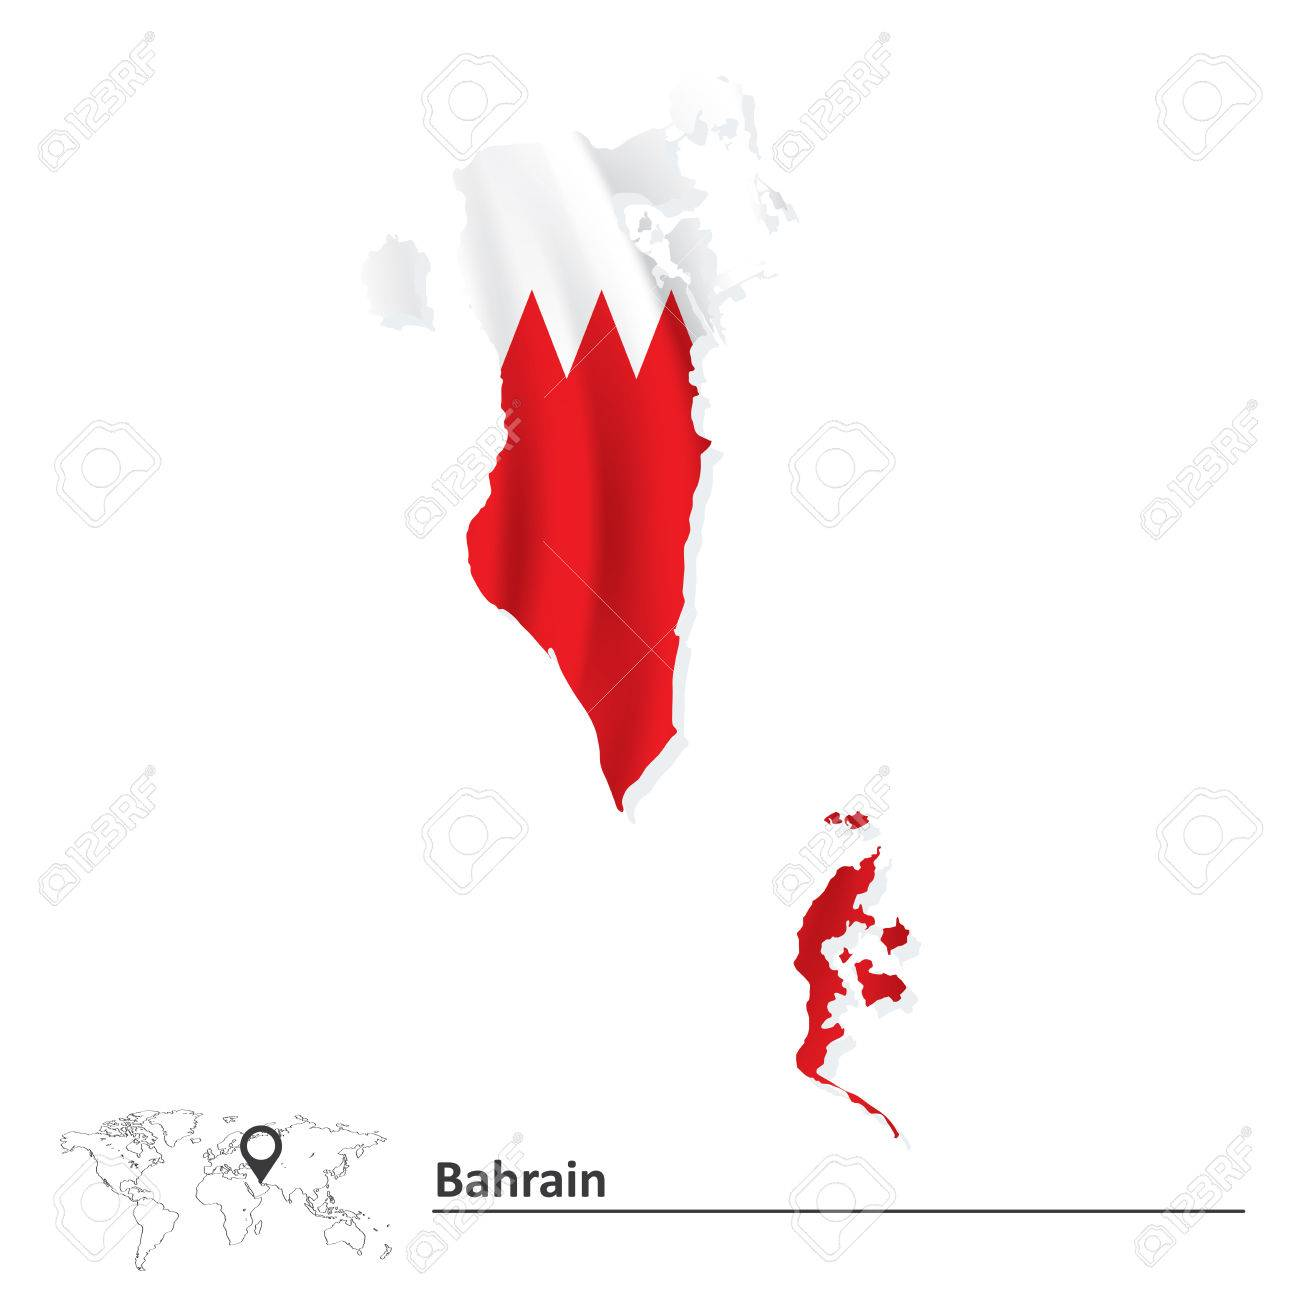 Map Of Bahrain With Flag Vector Illustration Royalty Free - Bahrain map